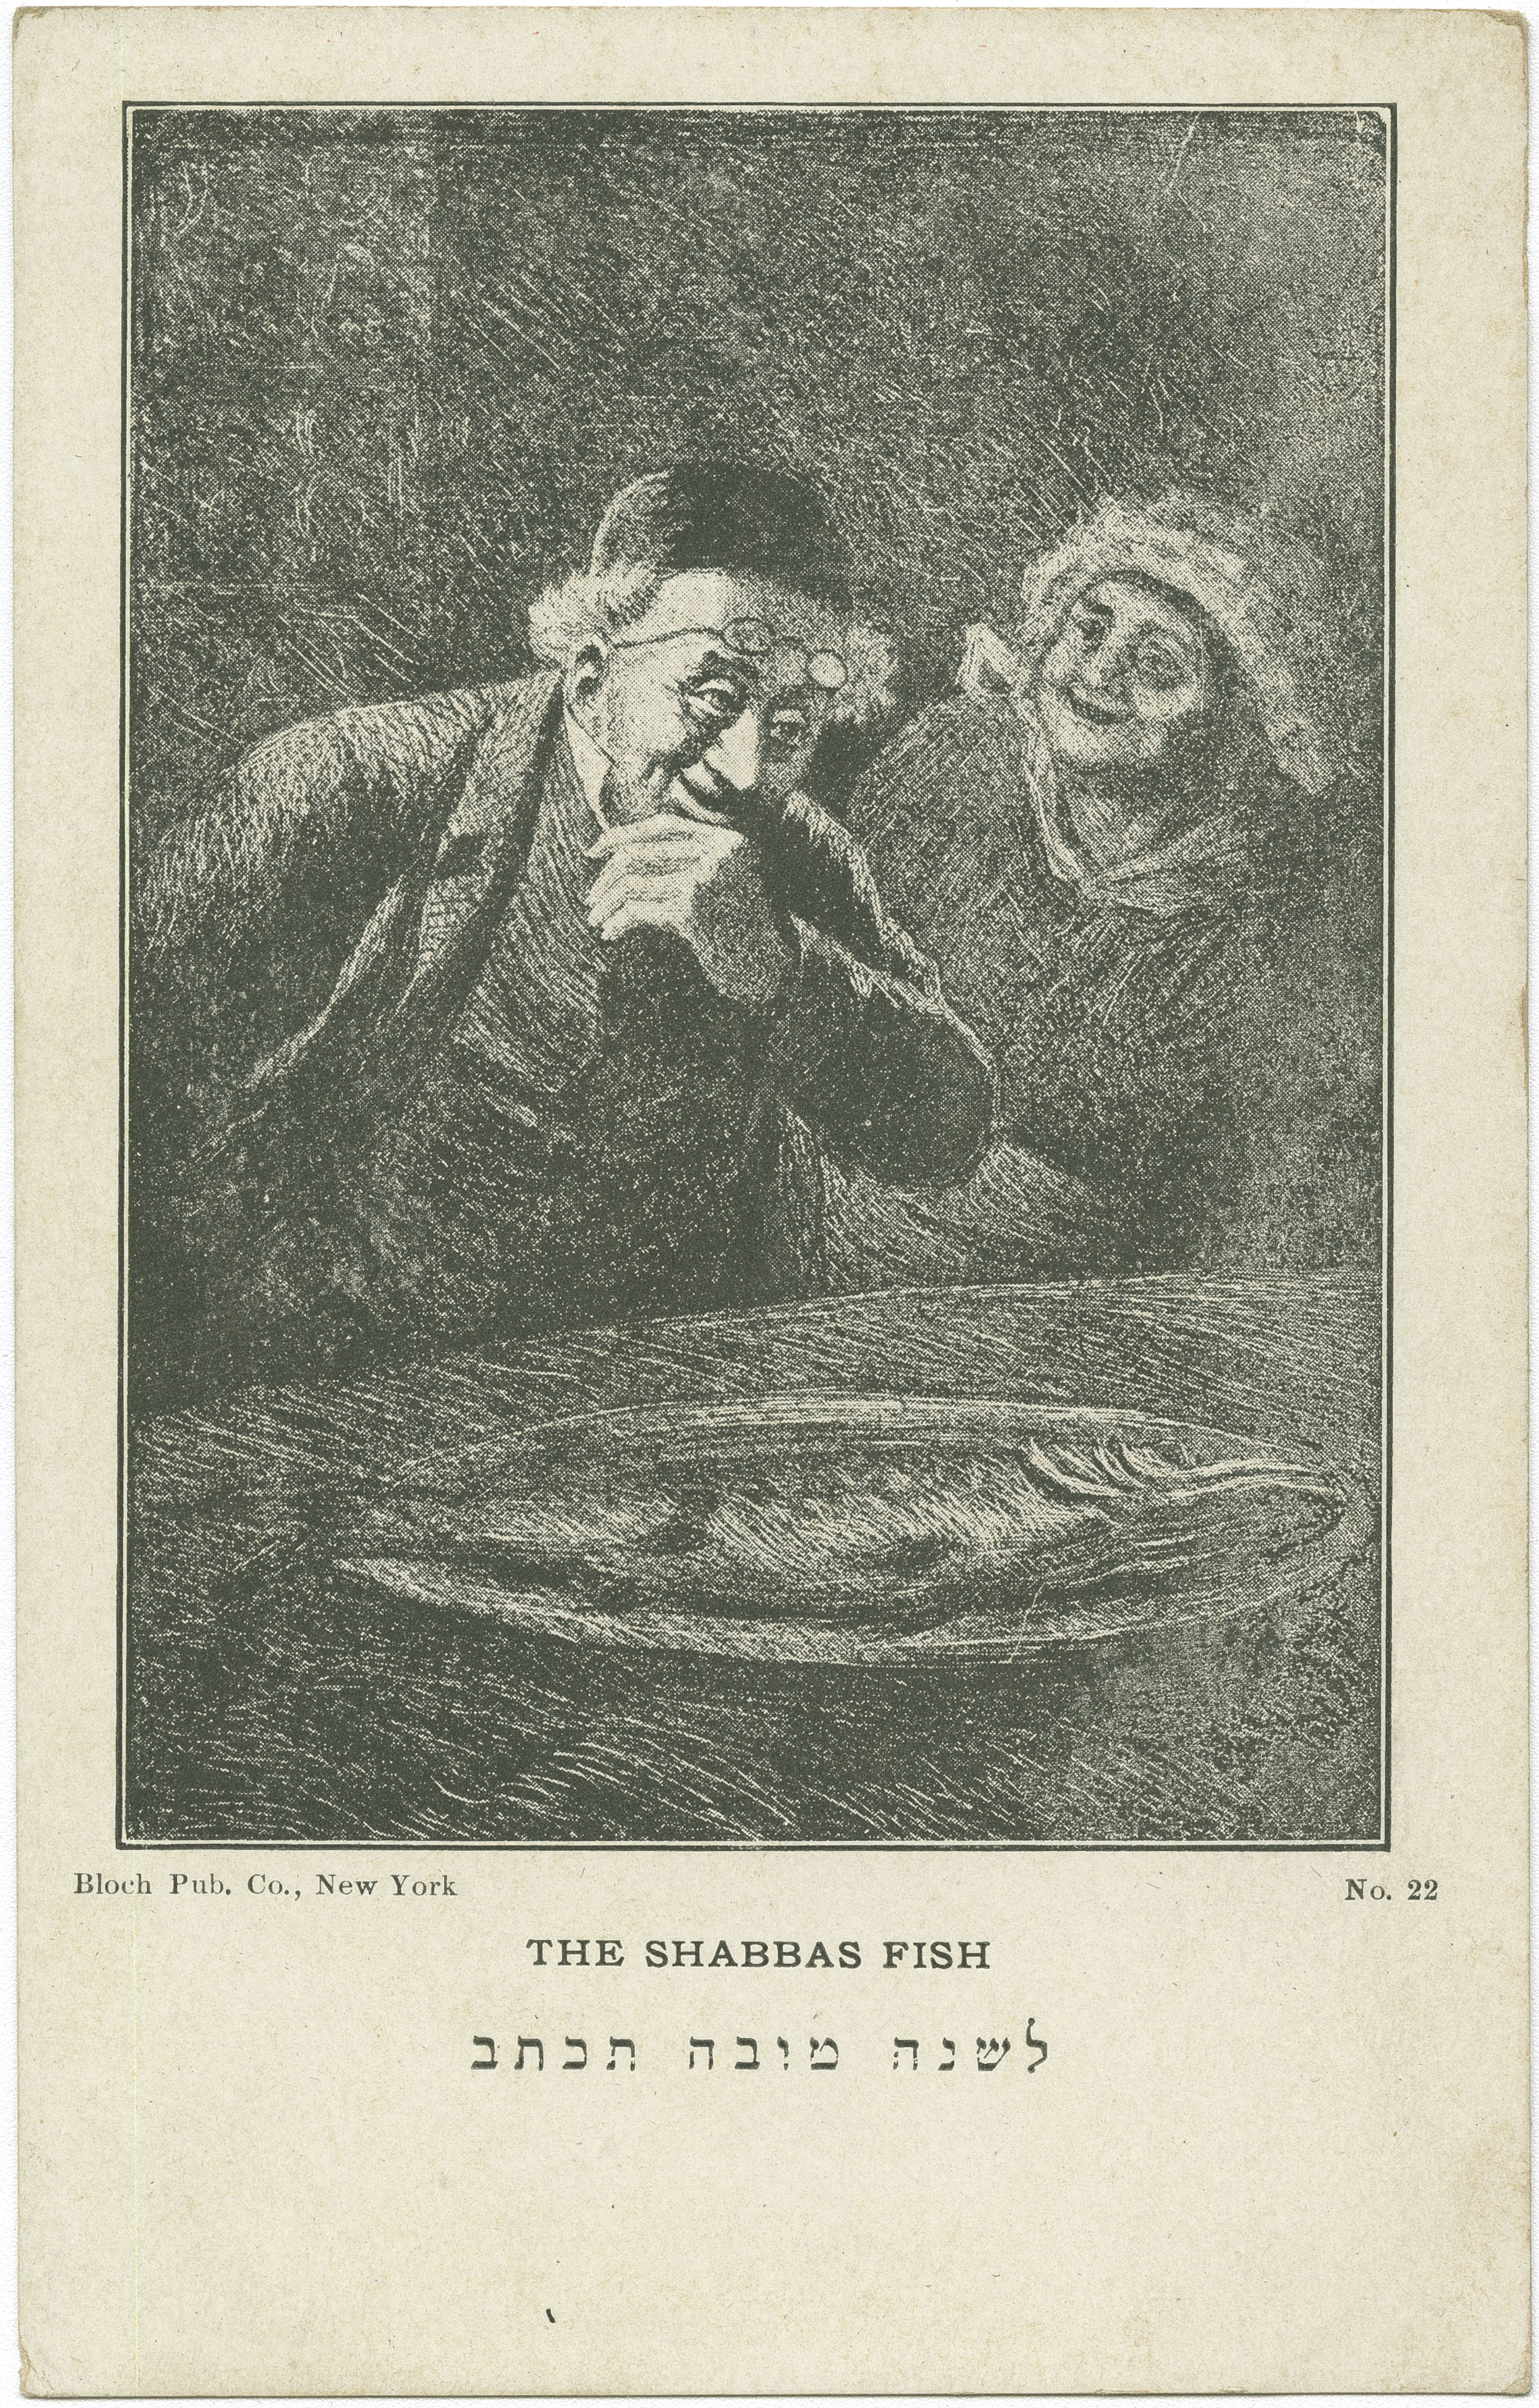 The Shabbas Fish / לשנה טובה תכתב